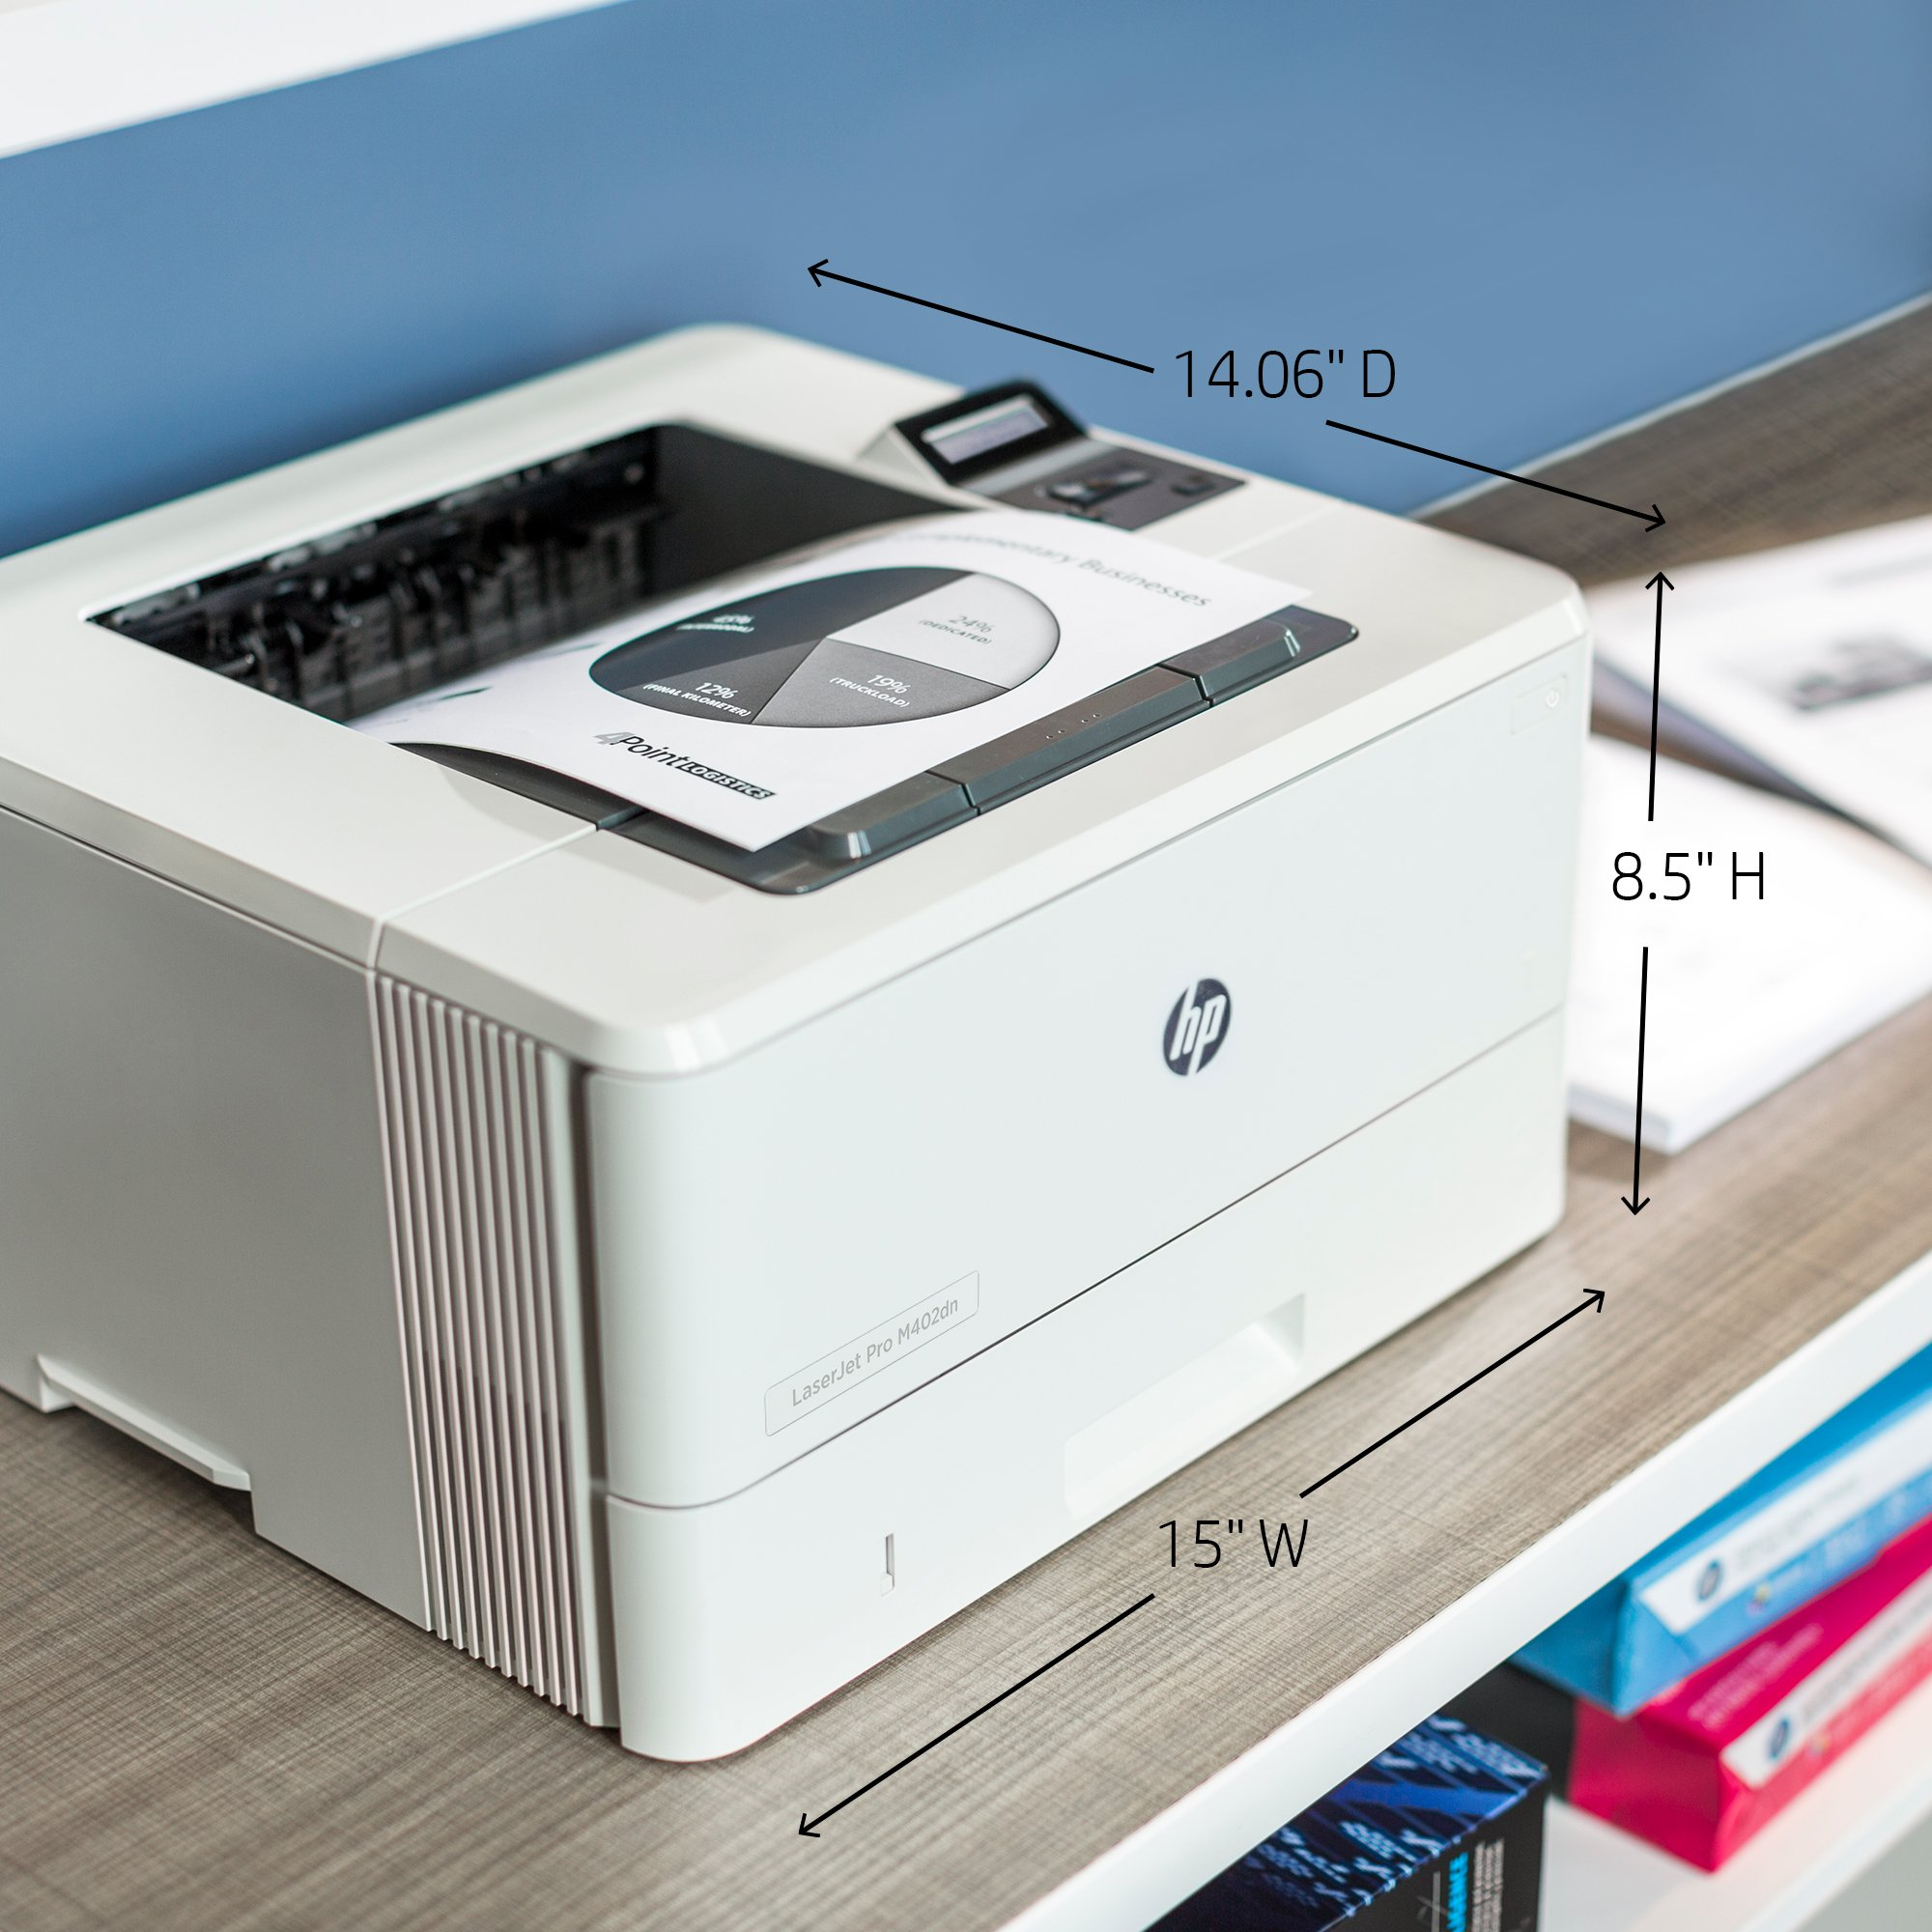 HP LaserJet Pro M402dn Laser Printer with Built-in Ethernet & Double-Sided Printing, Amazon Dash Replenishment ready (C5F94A) by HP (Image #3)